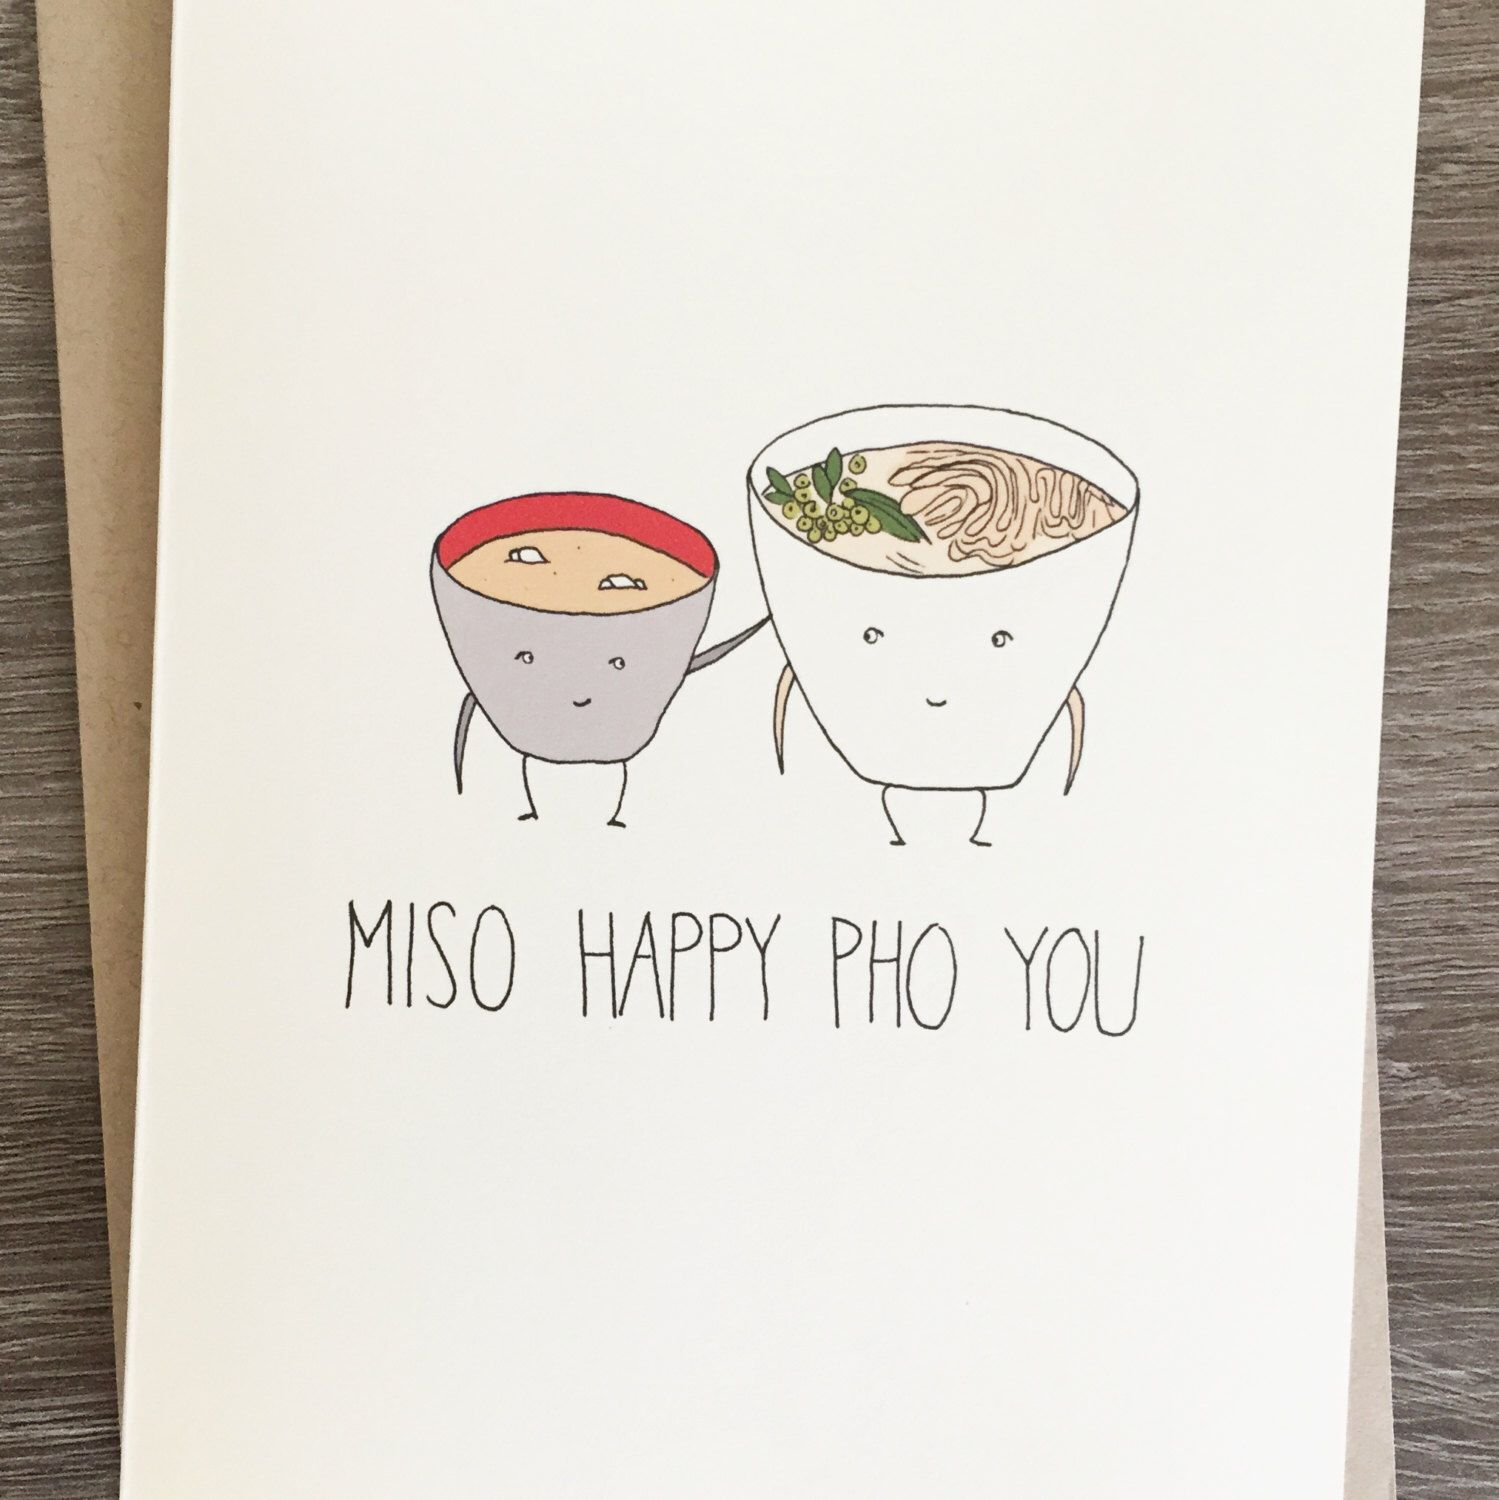 Pin by mariana riseley on cards pinterest congratulations card miso happy pho you congratulations card funny congratulations miso pho bookmarktalkfo Choice Image